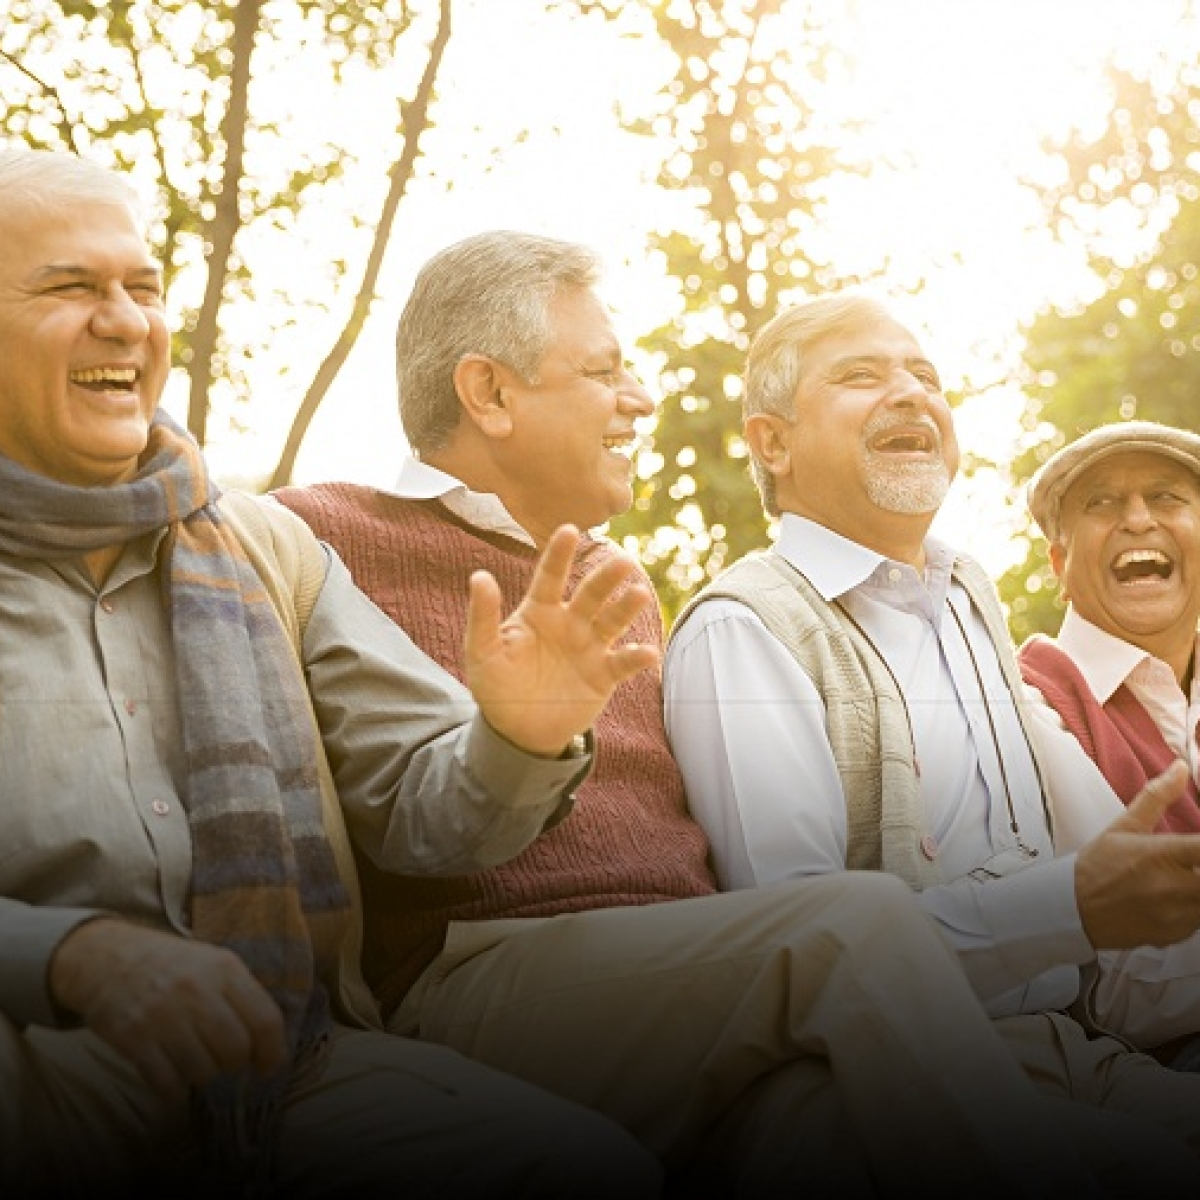 Youngsters take cue: Senior citizens share tips to stay happy and well